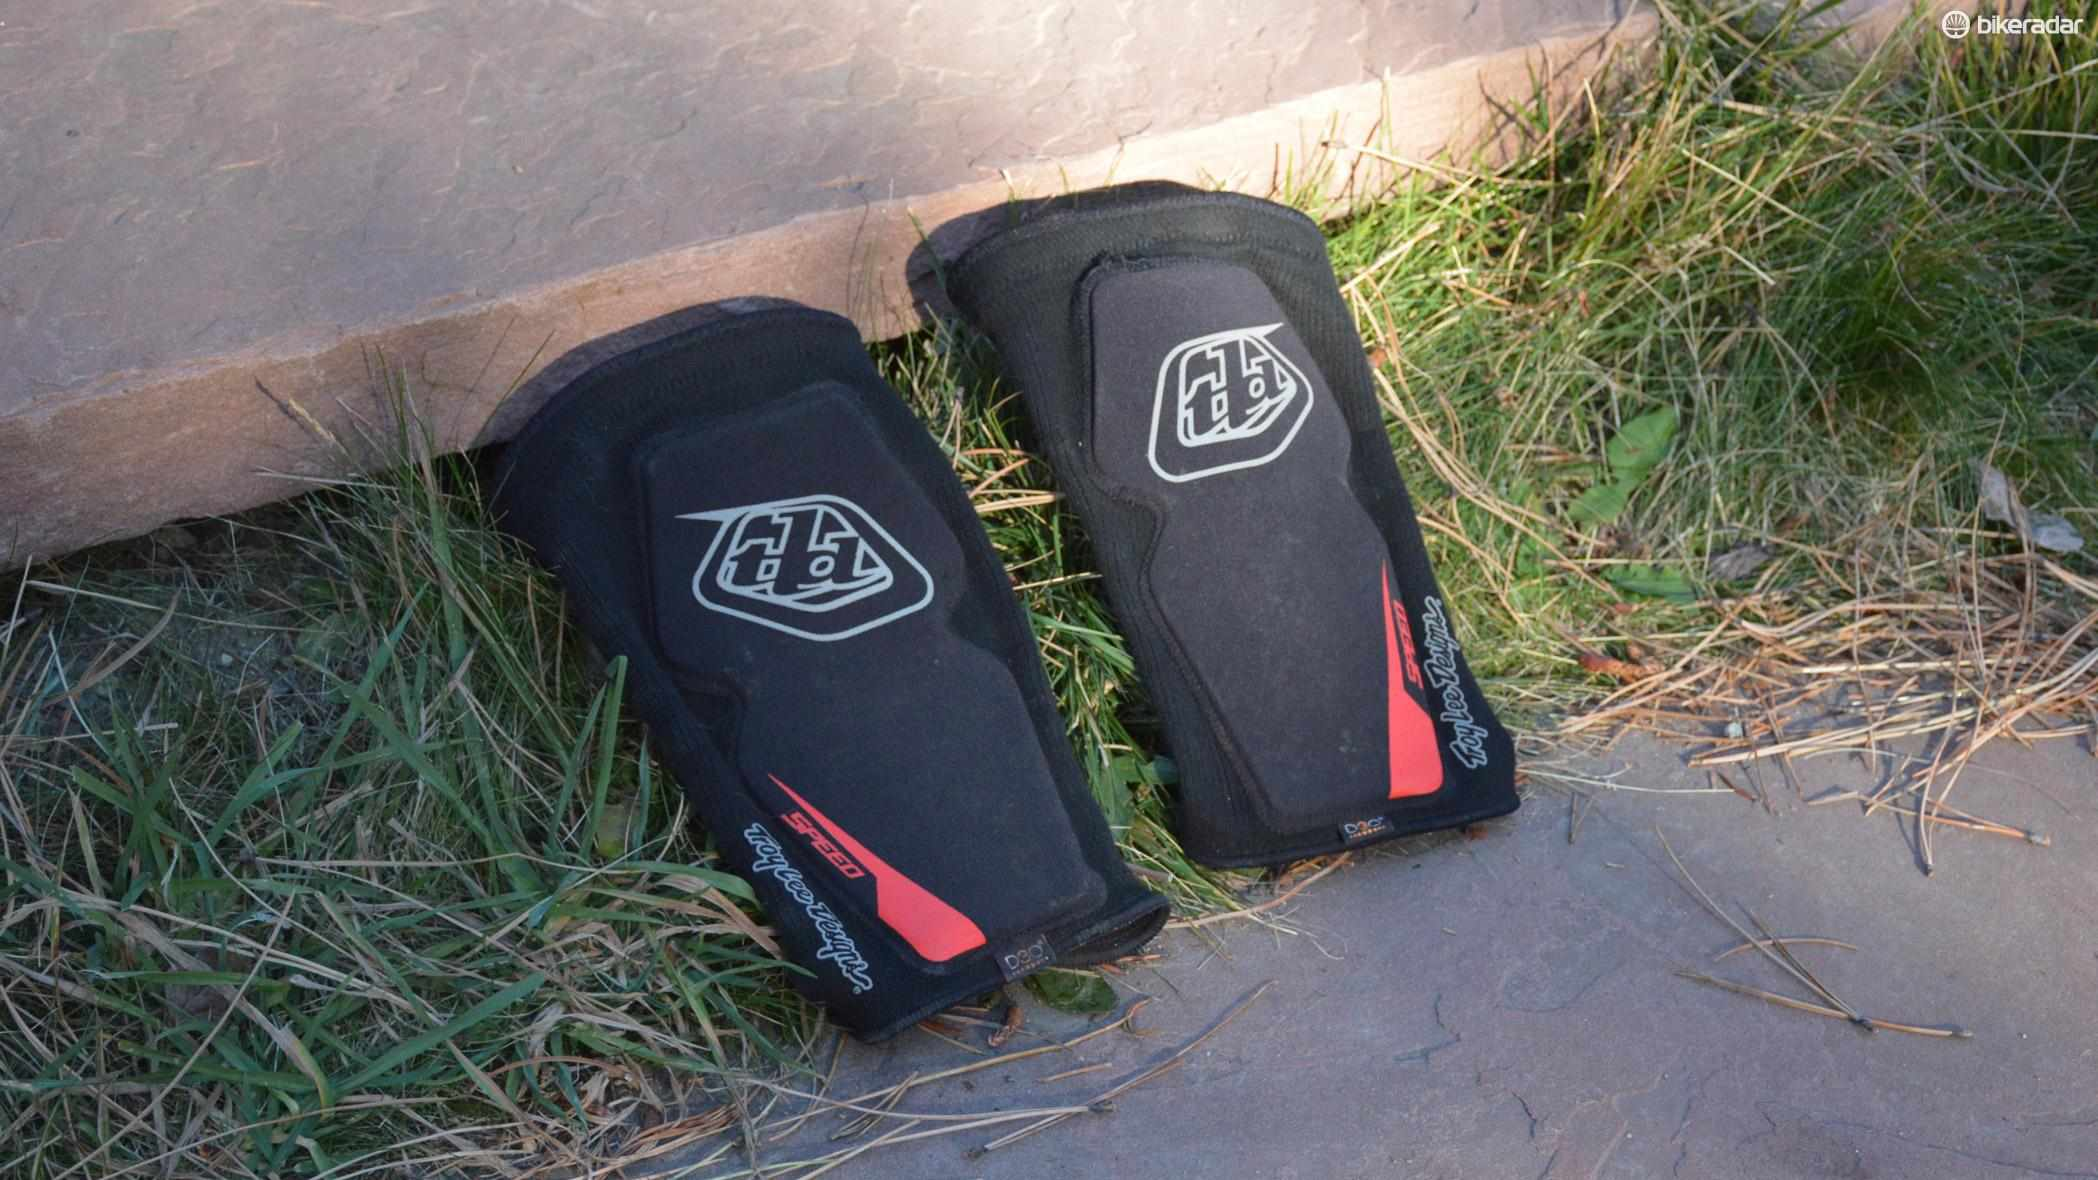 Troy Lee Designs' Speed Knee Sleeve pads are built for trail riding